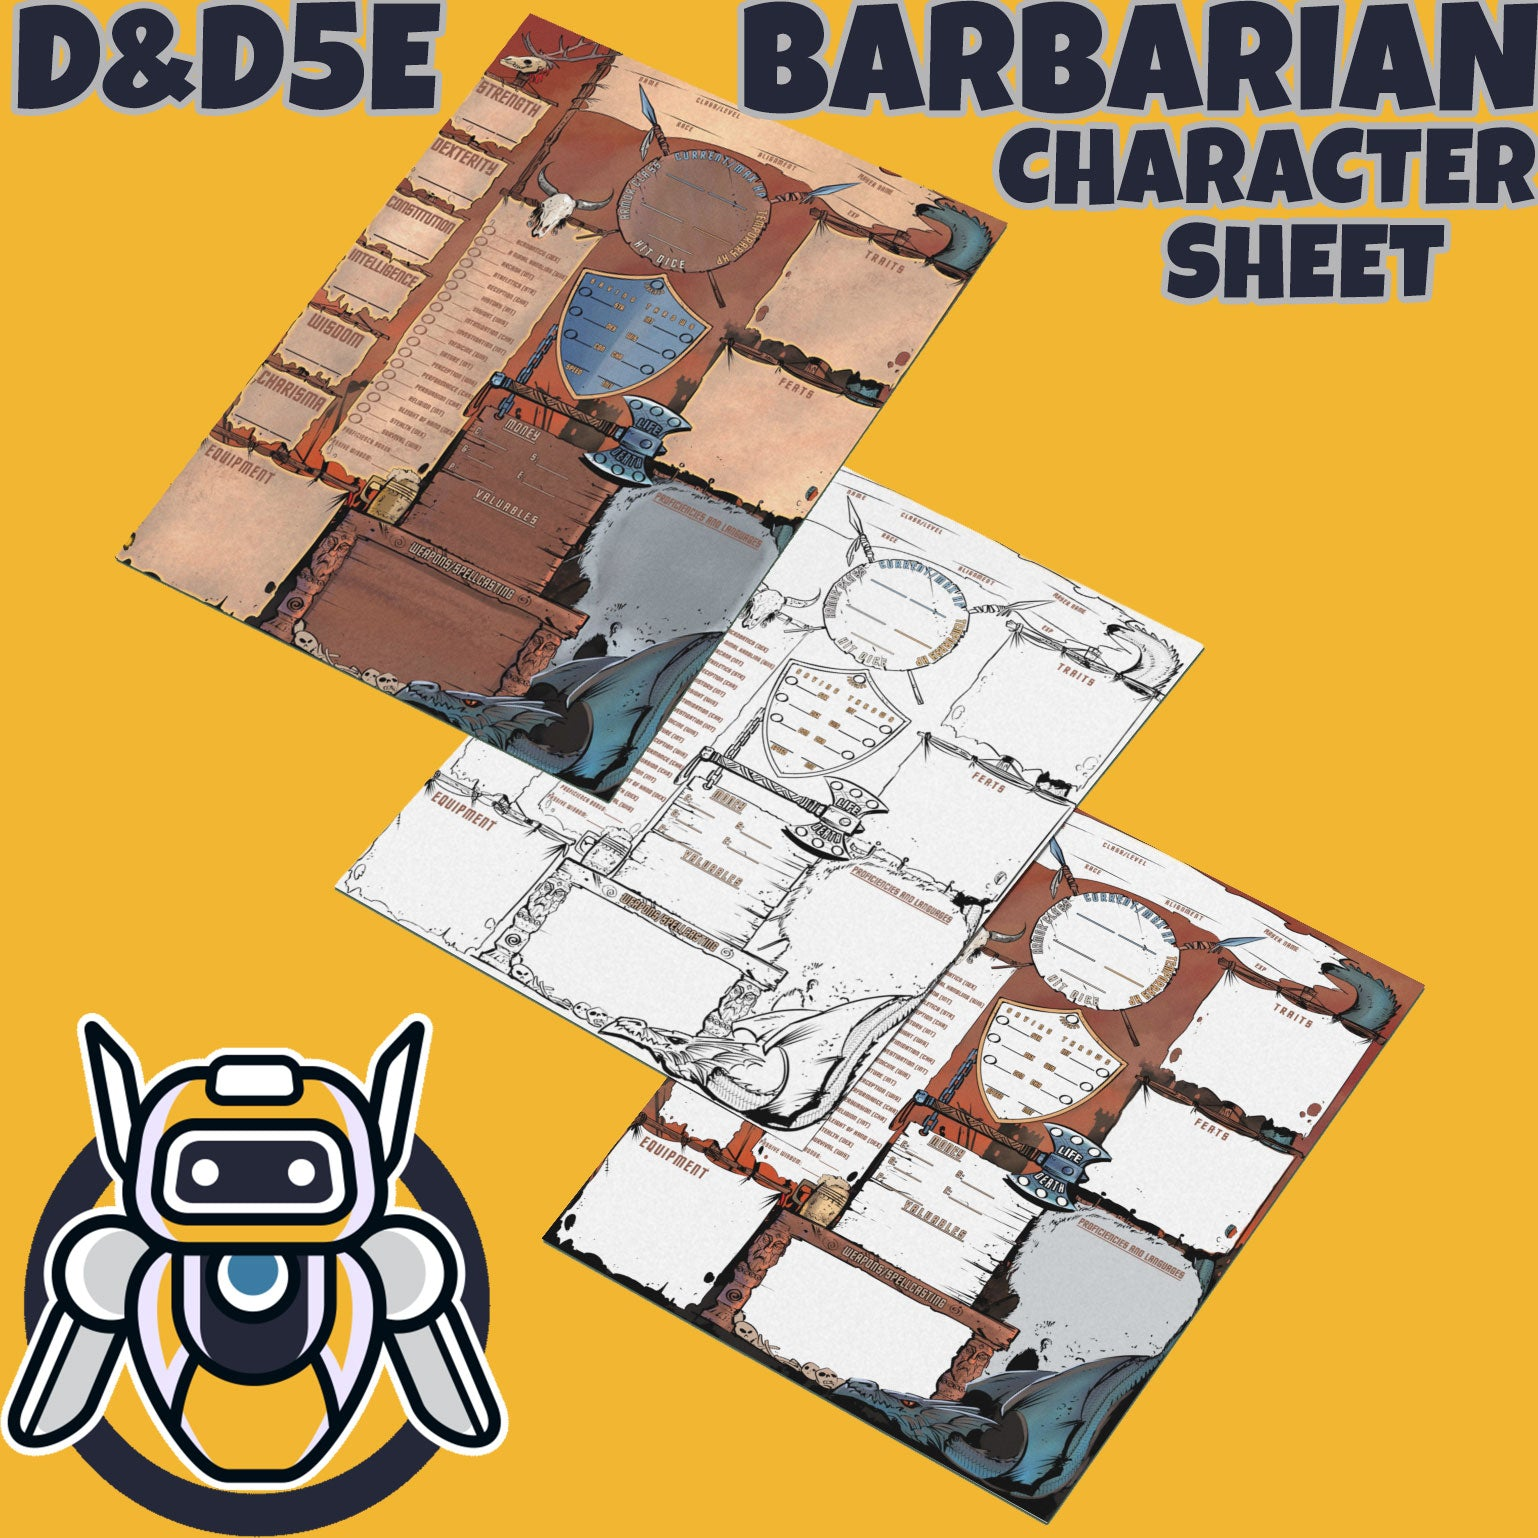 barbarian character sheet three versions